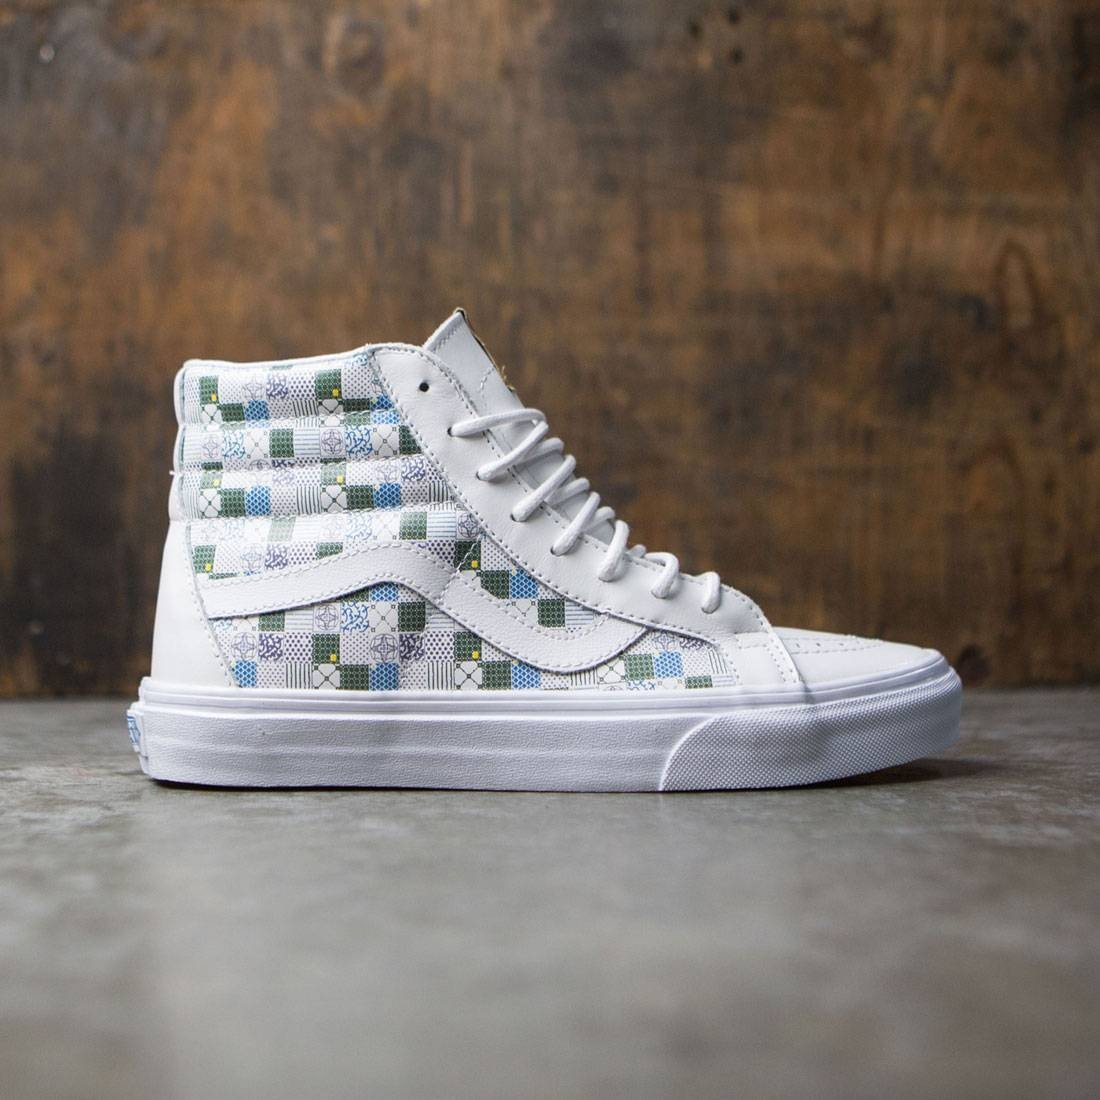 Vans Women Sk8-Hi Reissue DX - Tiles white leather true white fc2f5cbde